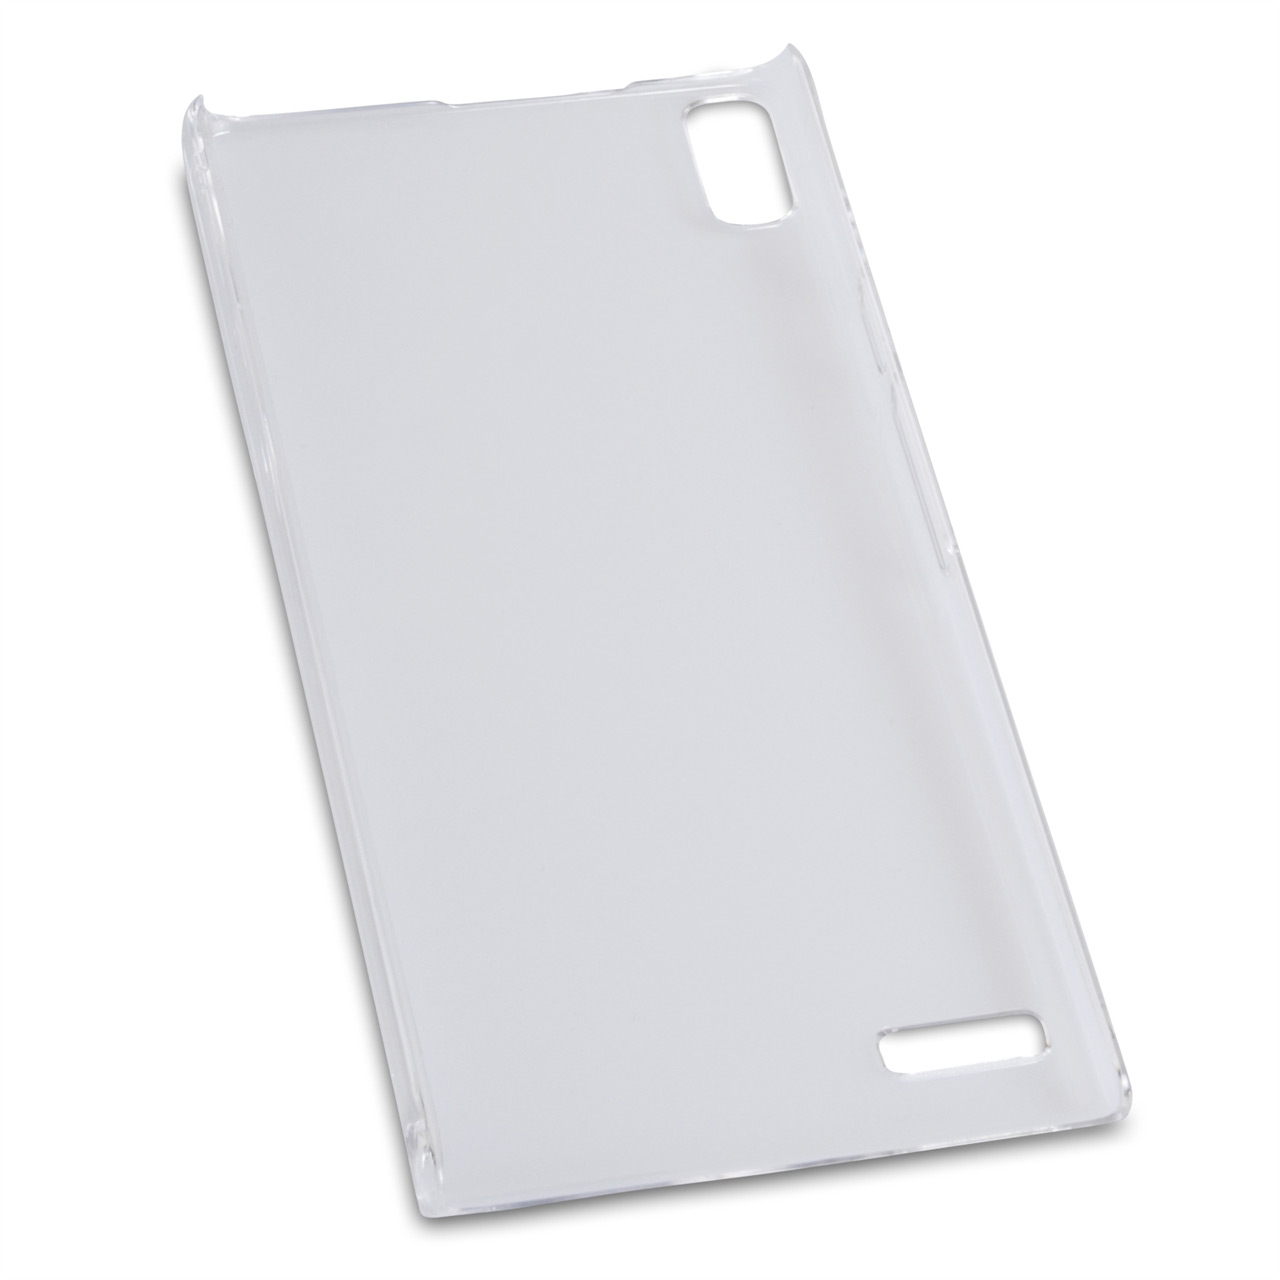 YouSave Accessories Huawei Ascend P6 Clear Ultra Thin Hard Case